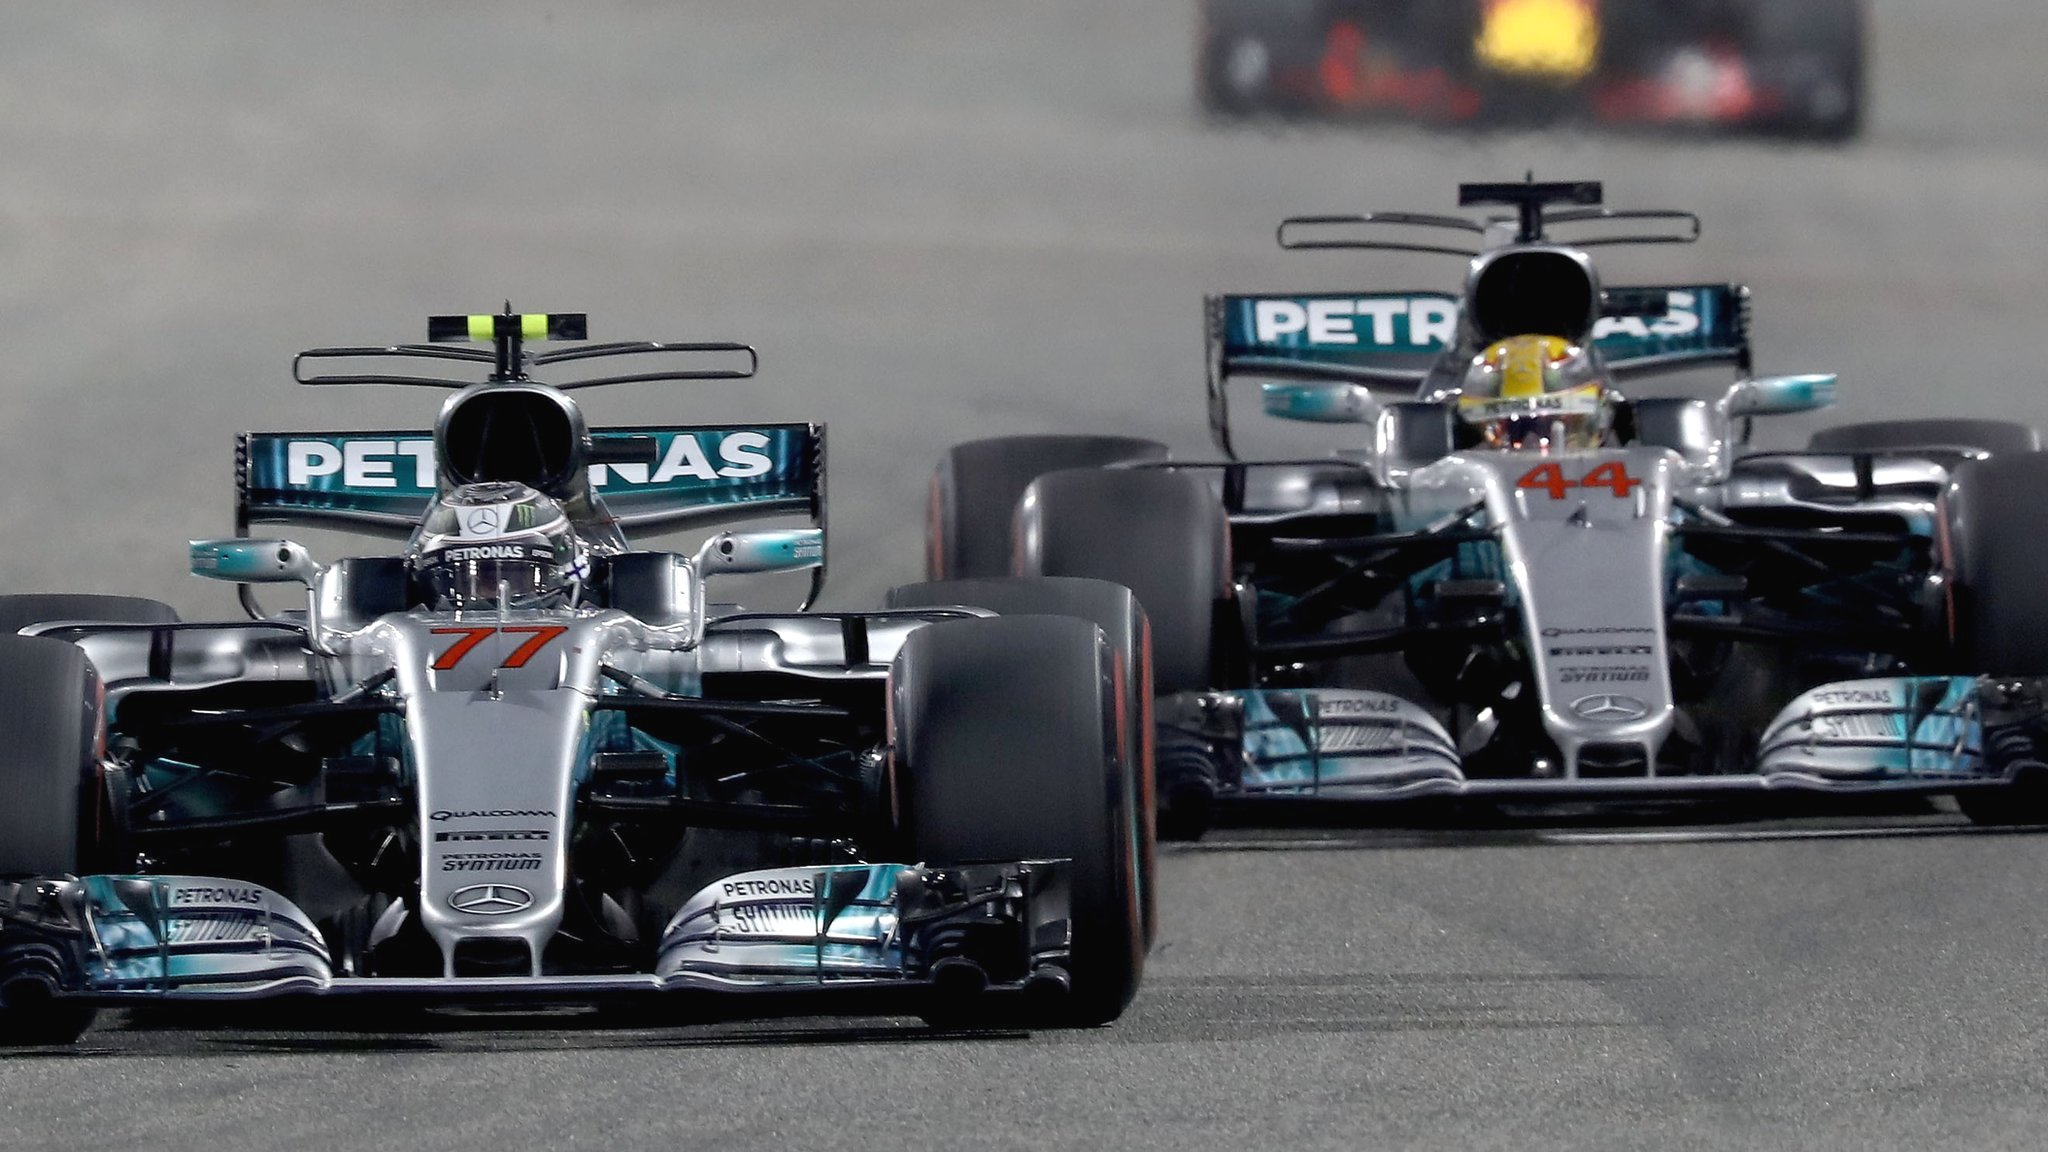 Lewis Hamilton says Mercedes will use team orders in 'special circumstances'